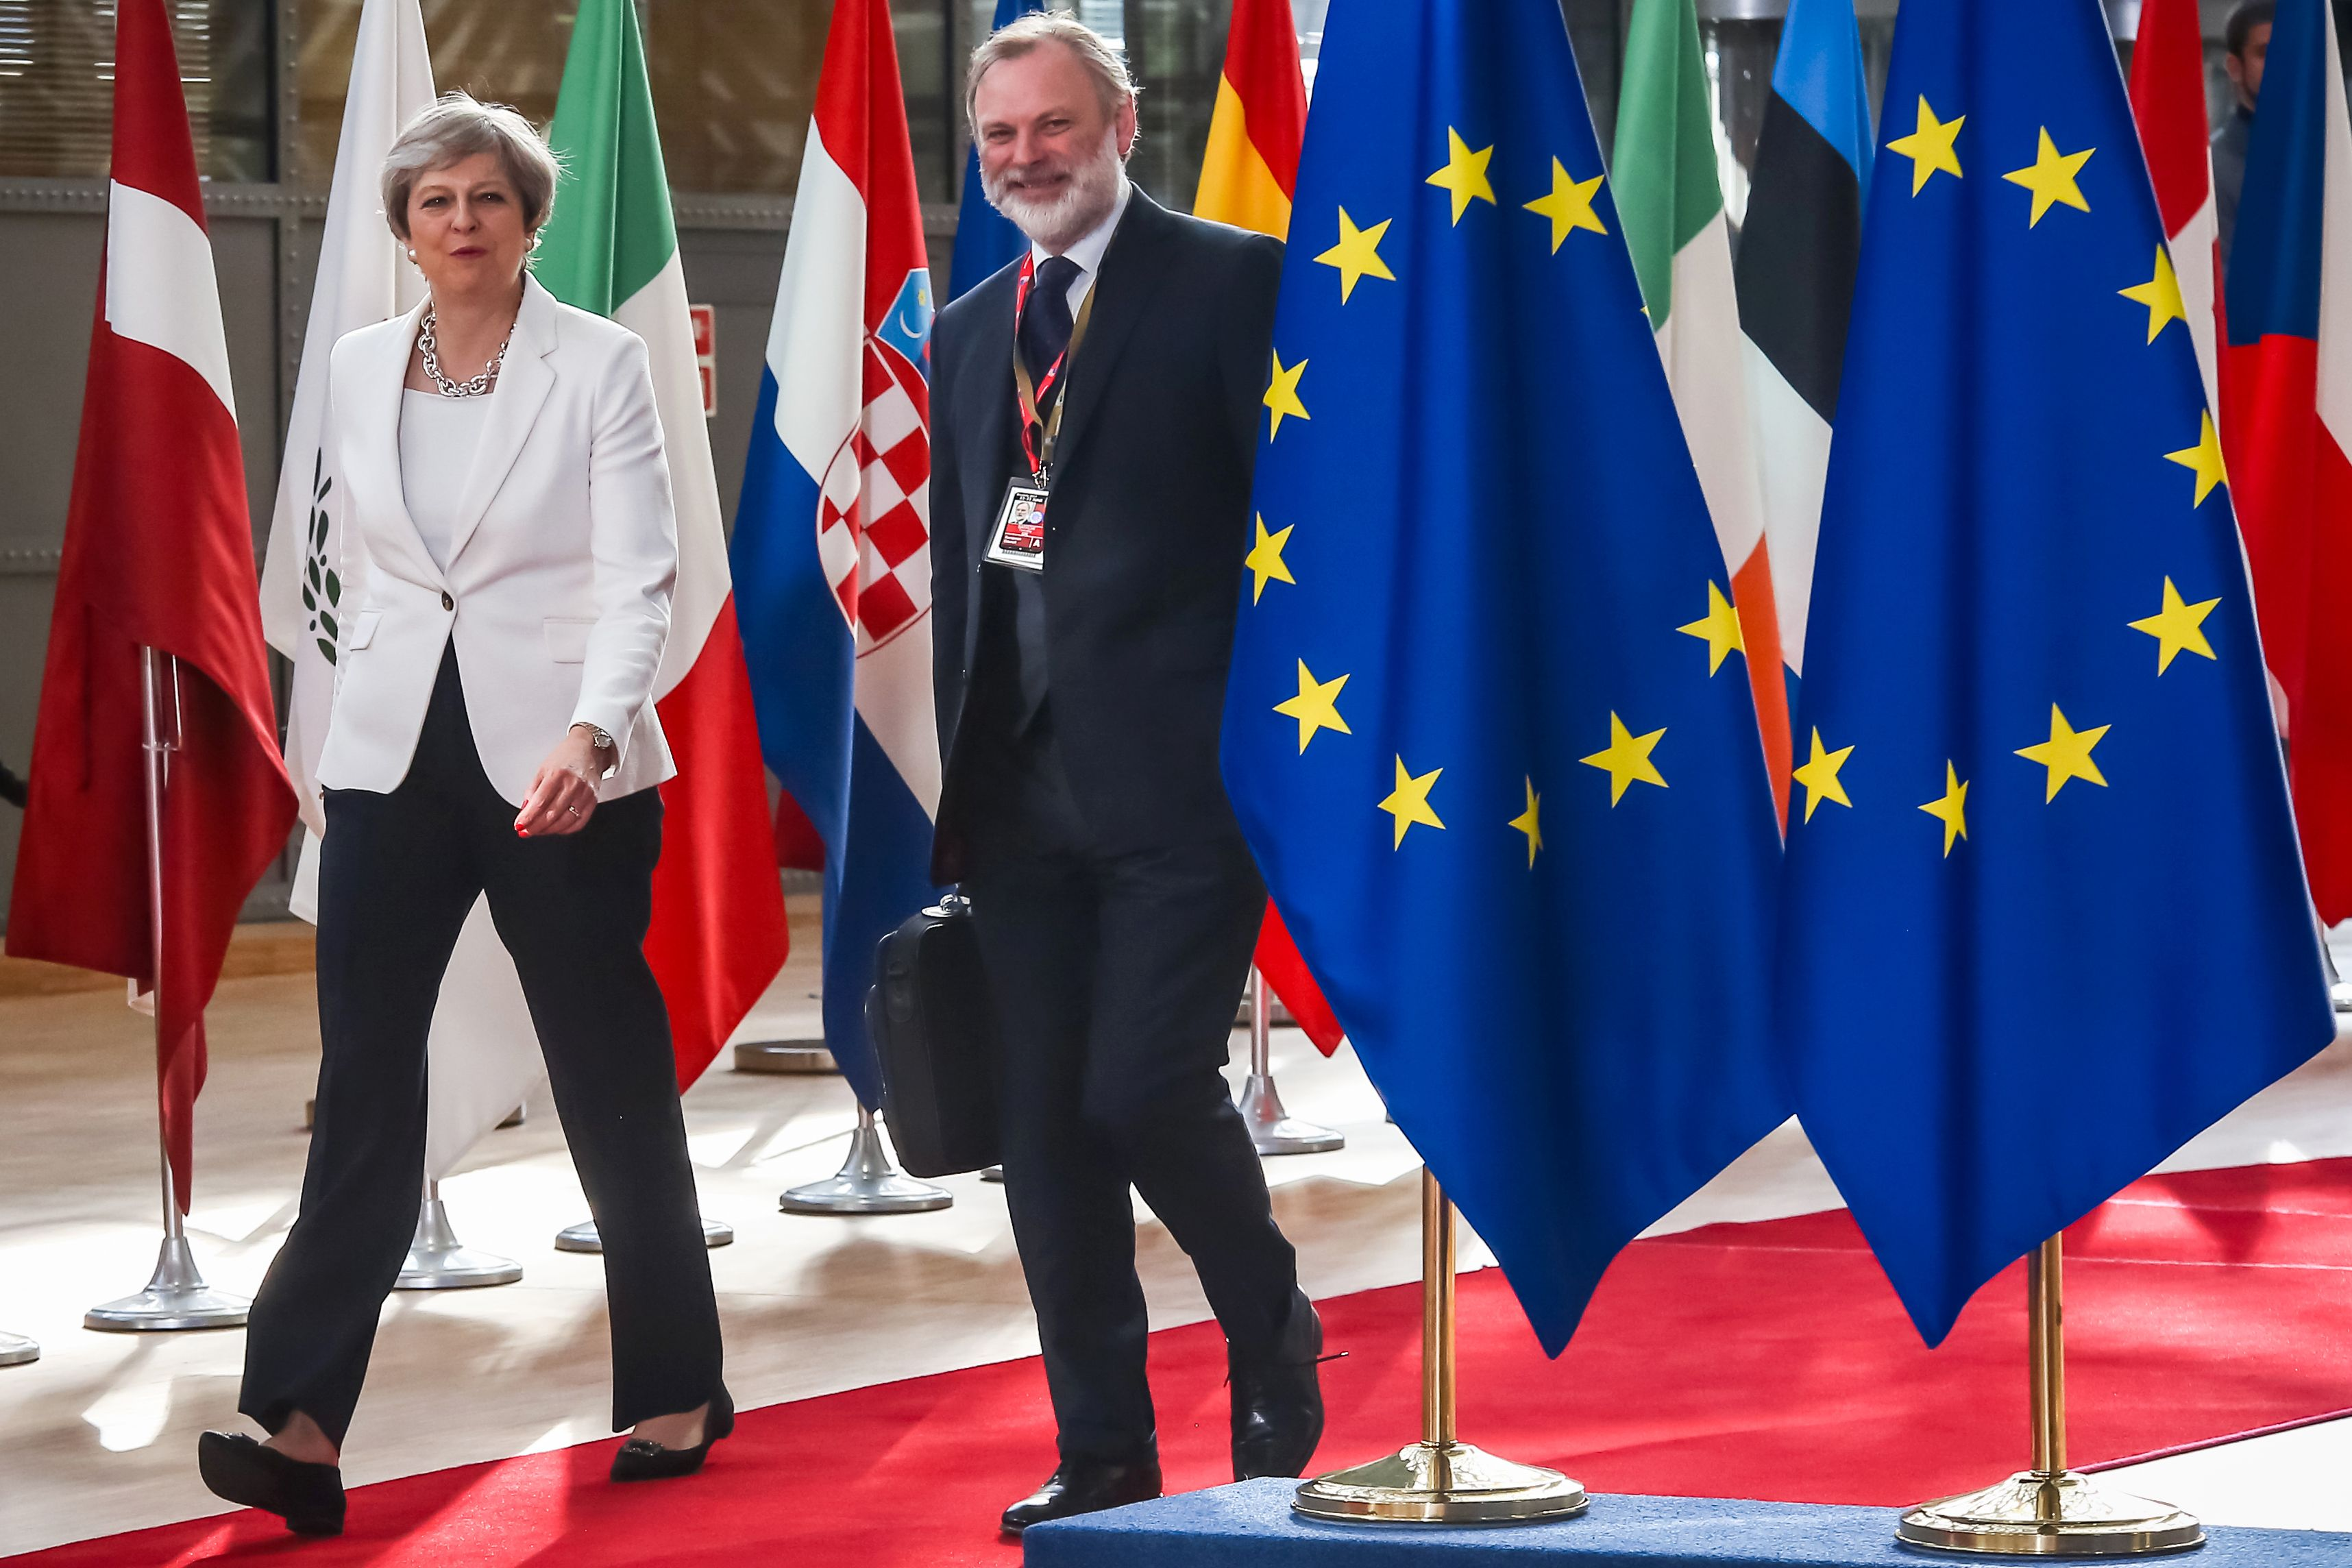 Britain's Prime Minister Theresa May arrives on the second day of a summit of European Union (EU) leaders and focusing on globalization and migration, after the first day was dominated by the future of the EU and the Brexit, on June 23, 2017 in Brussels.